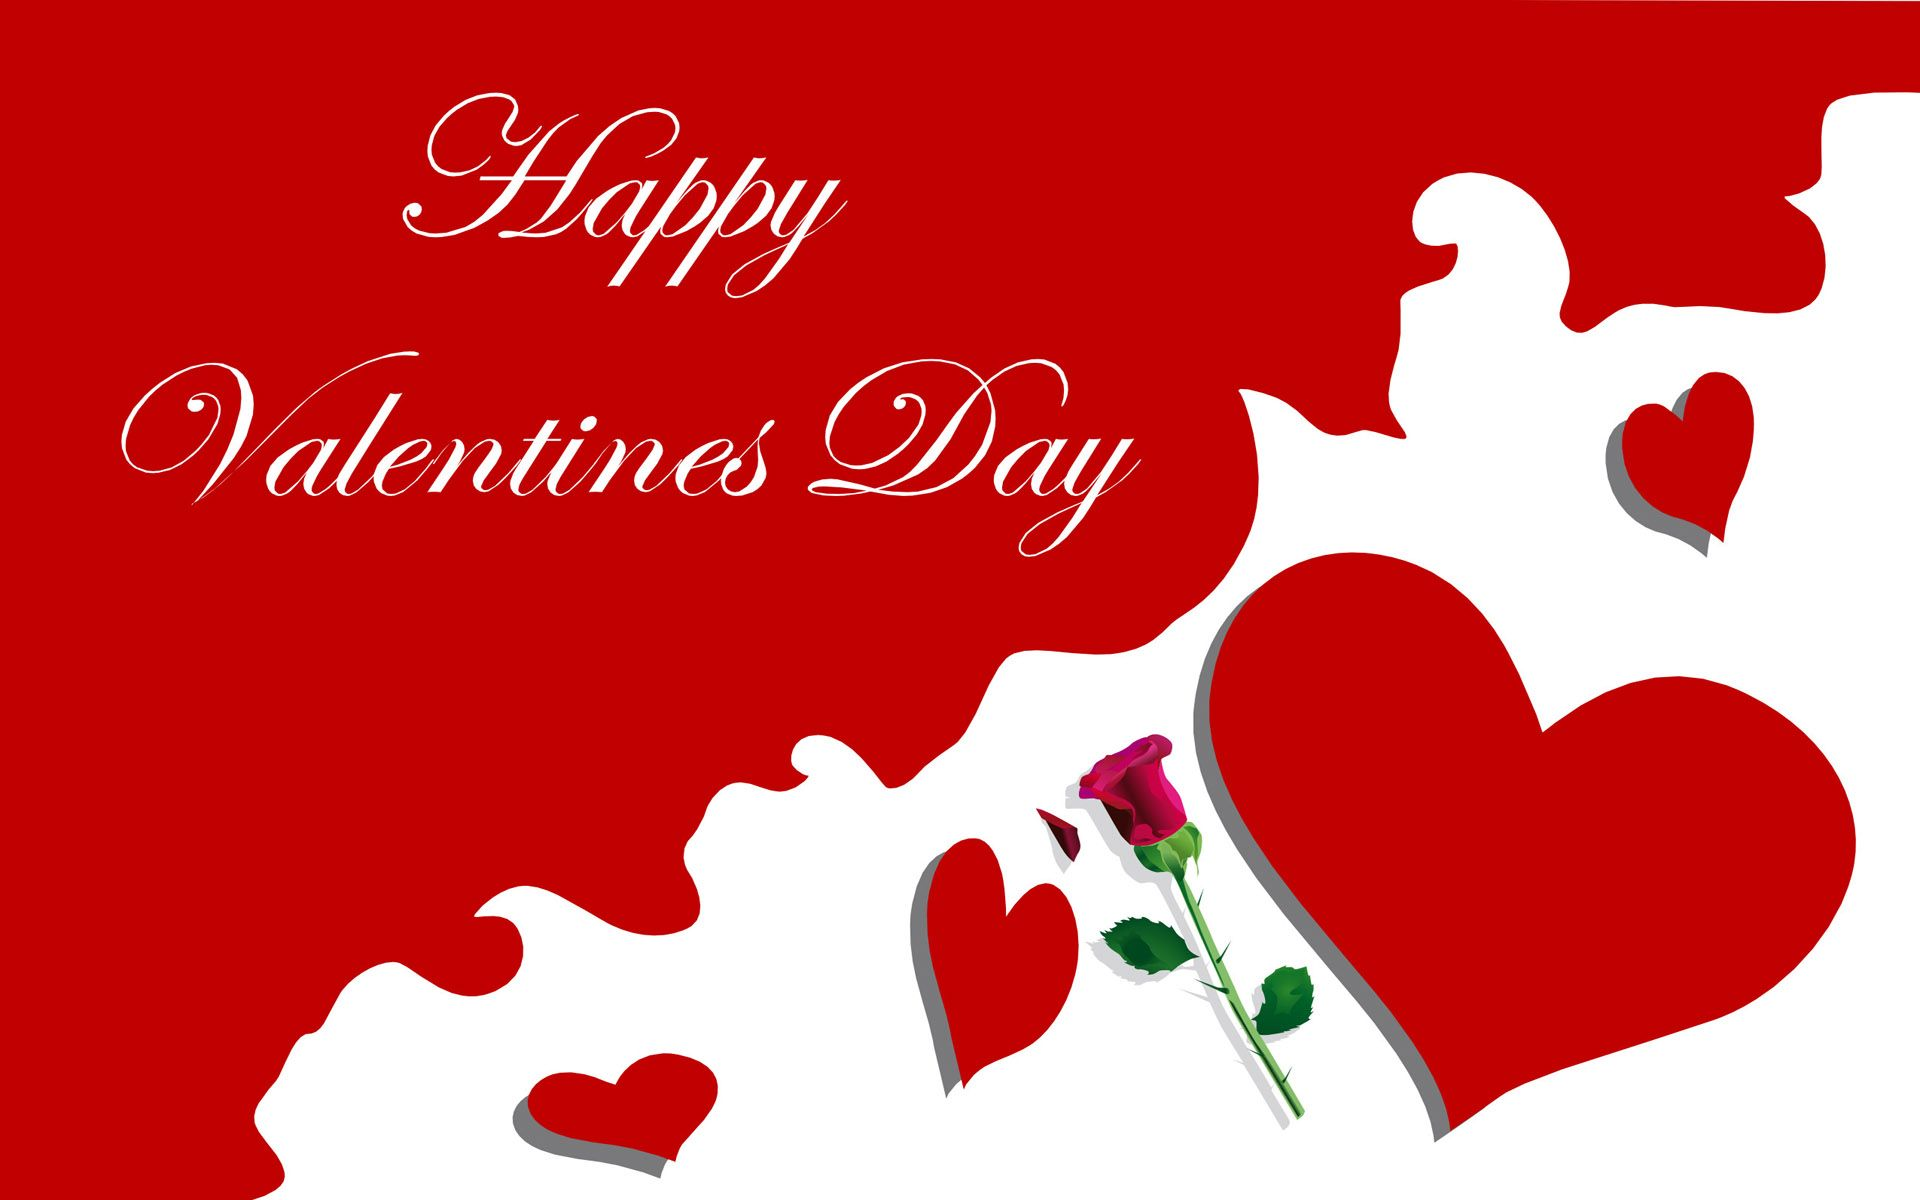 Happy Valentines Day Images 2015 – Happy Valentines Day 2015 Cards